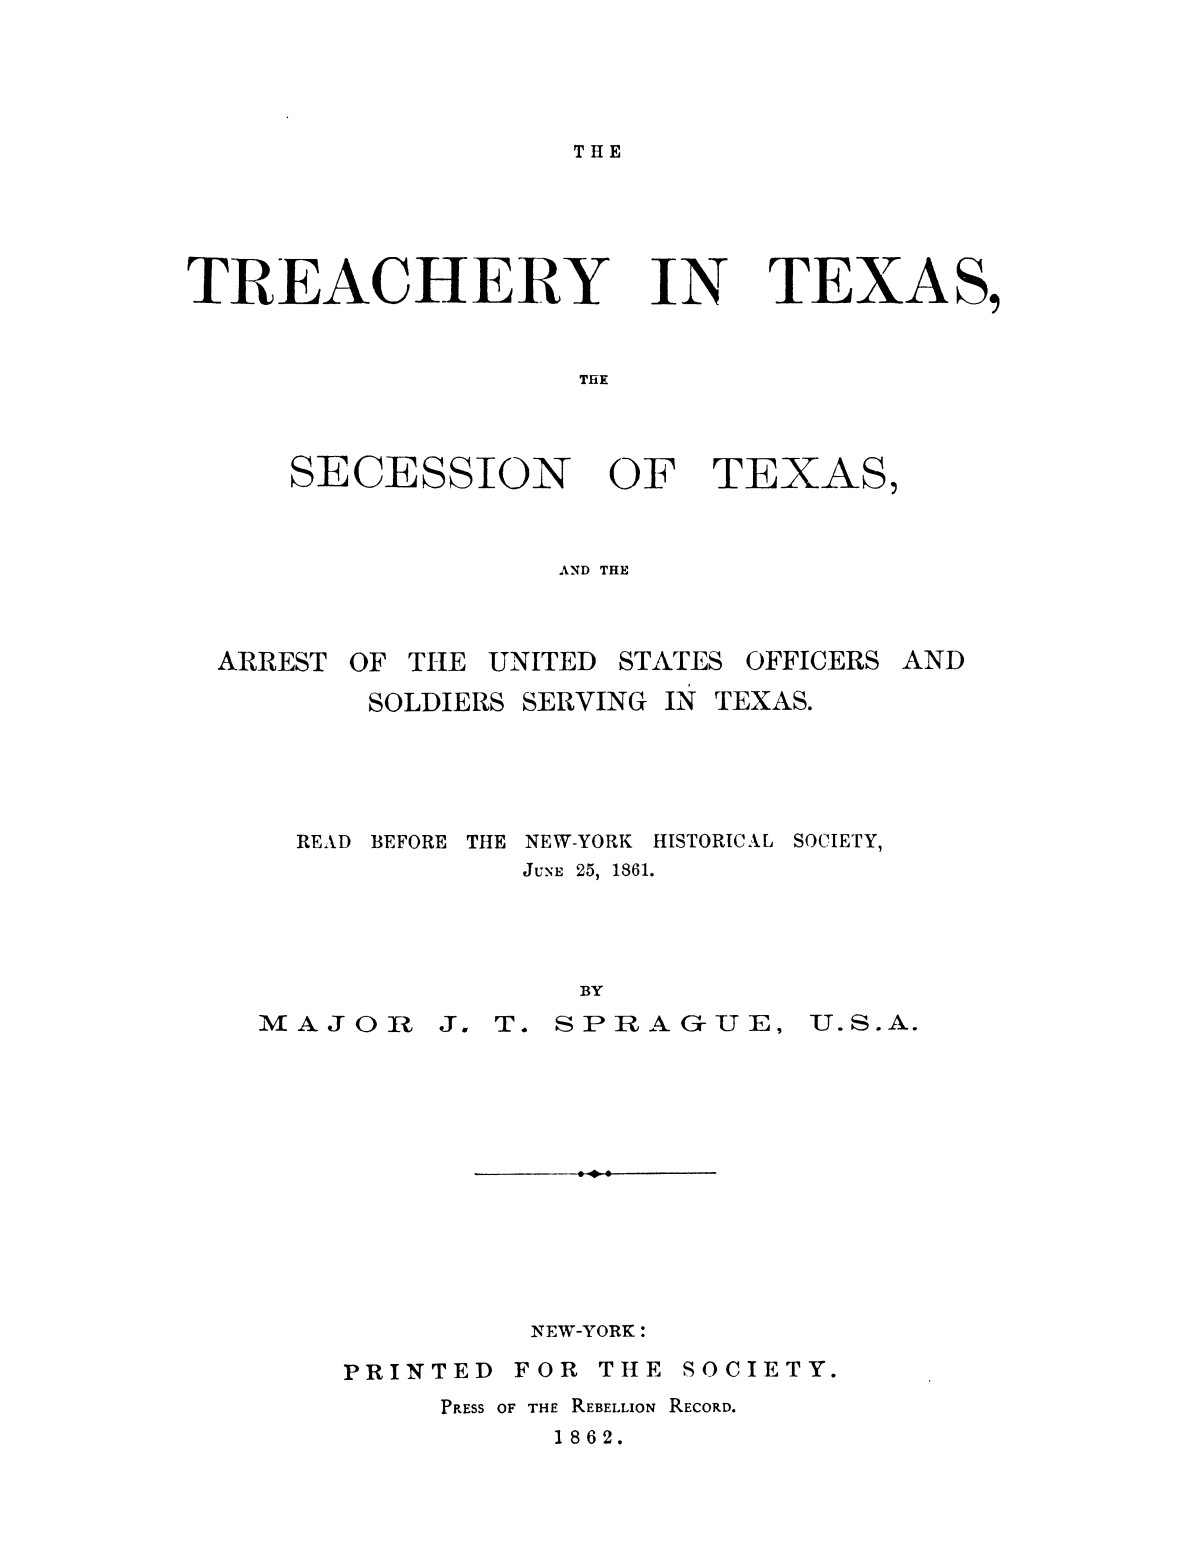 The treachery in Texas, the secession of Texas, and the arrest of the United States officers and soldiers serving in Texas. Read before the New-York Historical Society, June 25, 1861. By Major J. T. Sprague, U. S. A.                                                                                                      [Sequence #]: 1 of 36